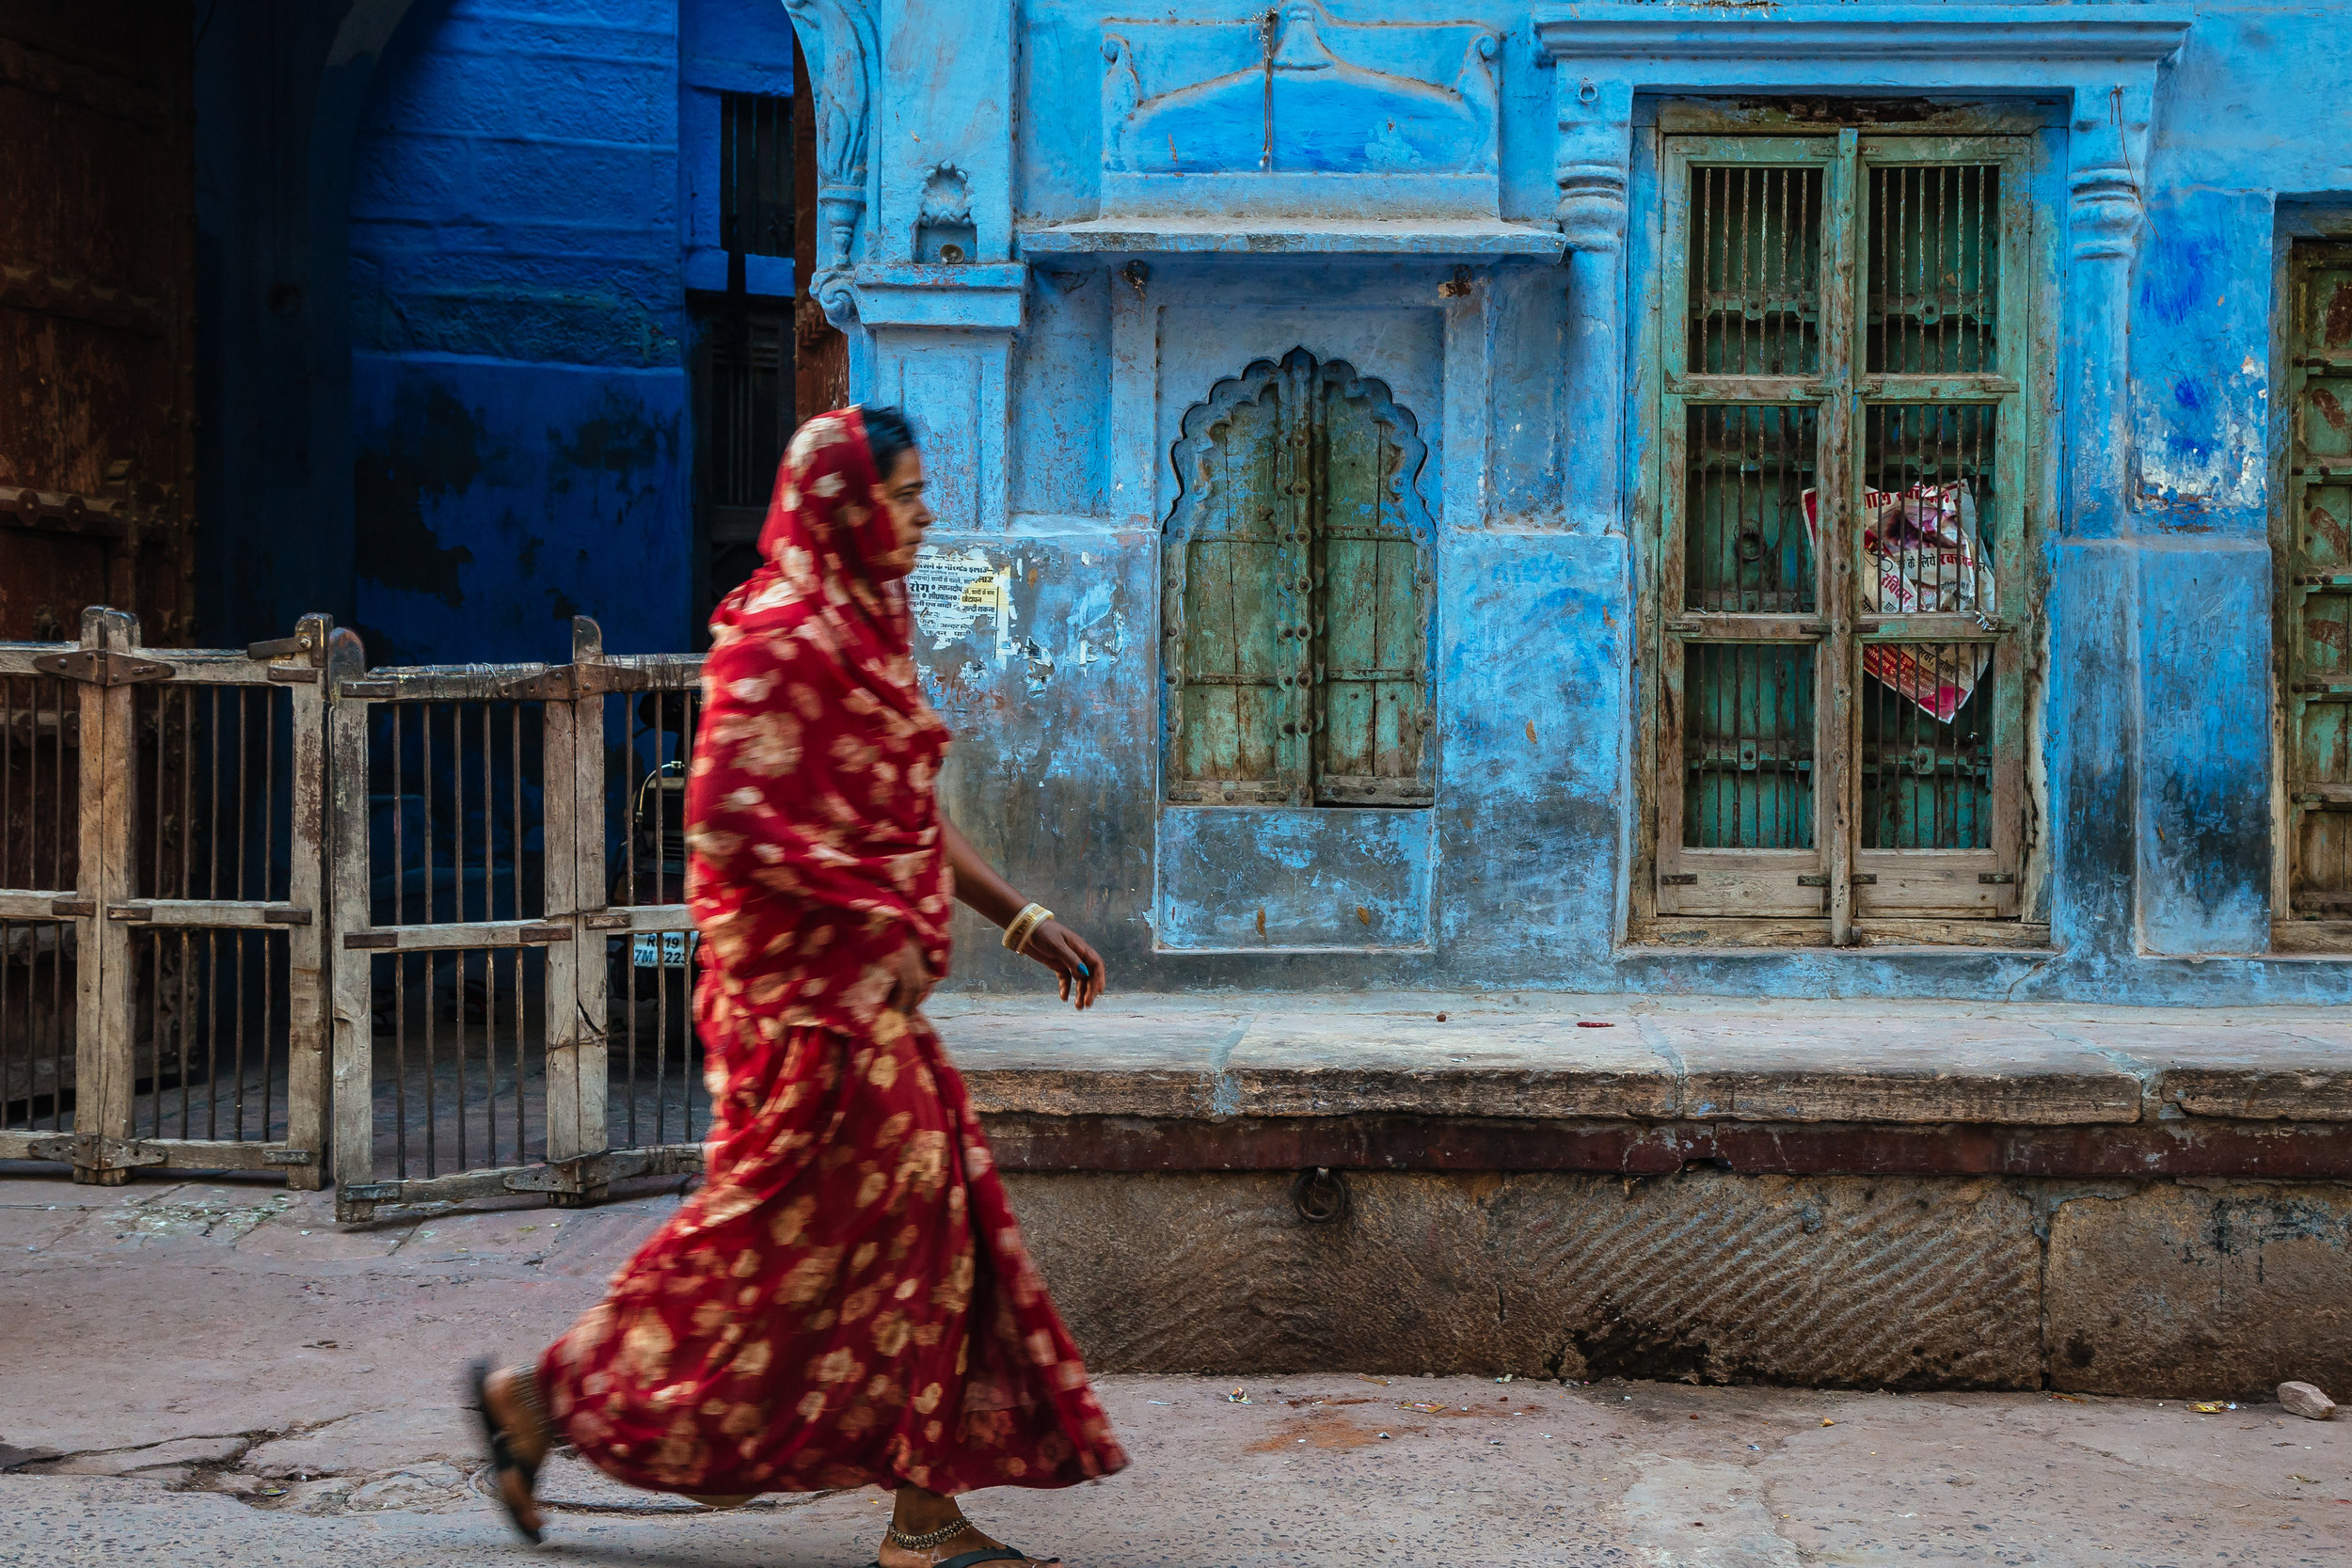 A woman in Red saree walking in the streets of Blue city in Jodh